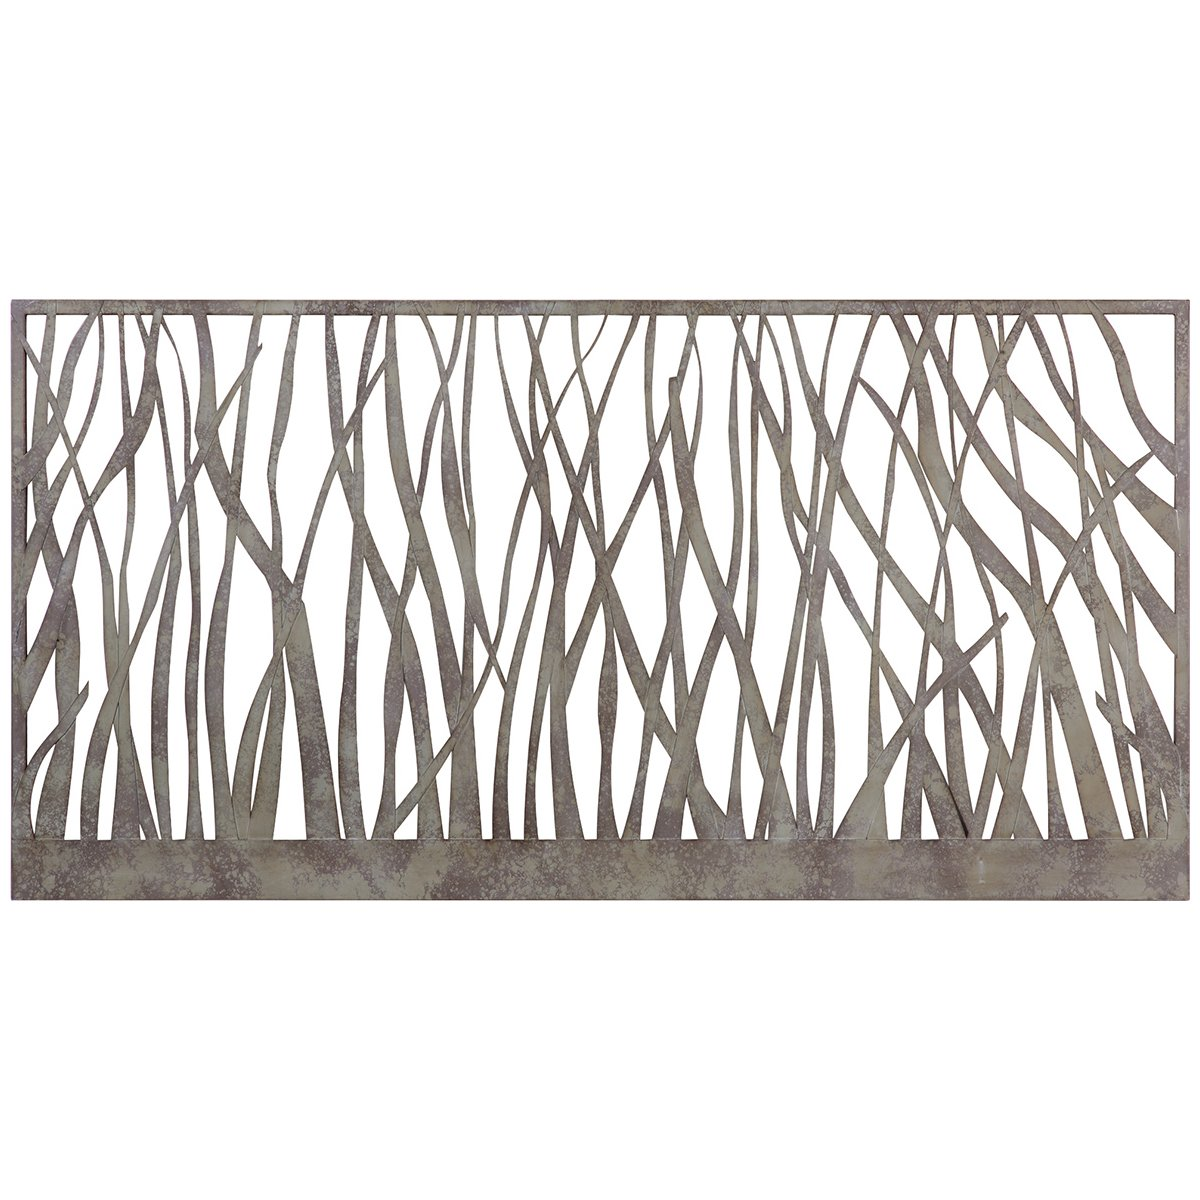 Amazon uttermost 13931 amadahy metal wall art home kitchen amipublicfo Gallery